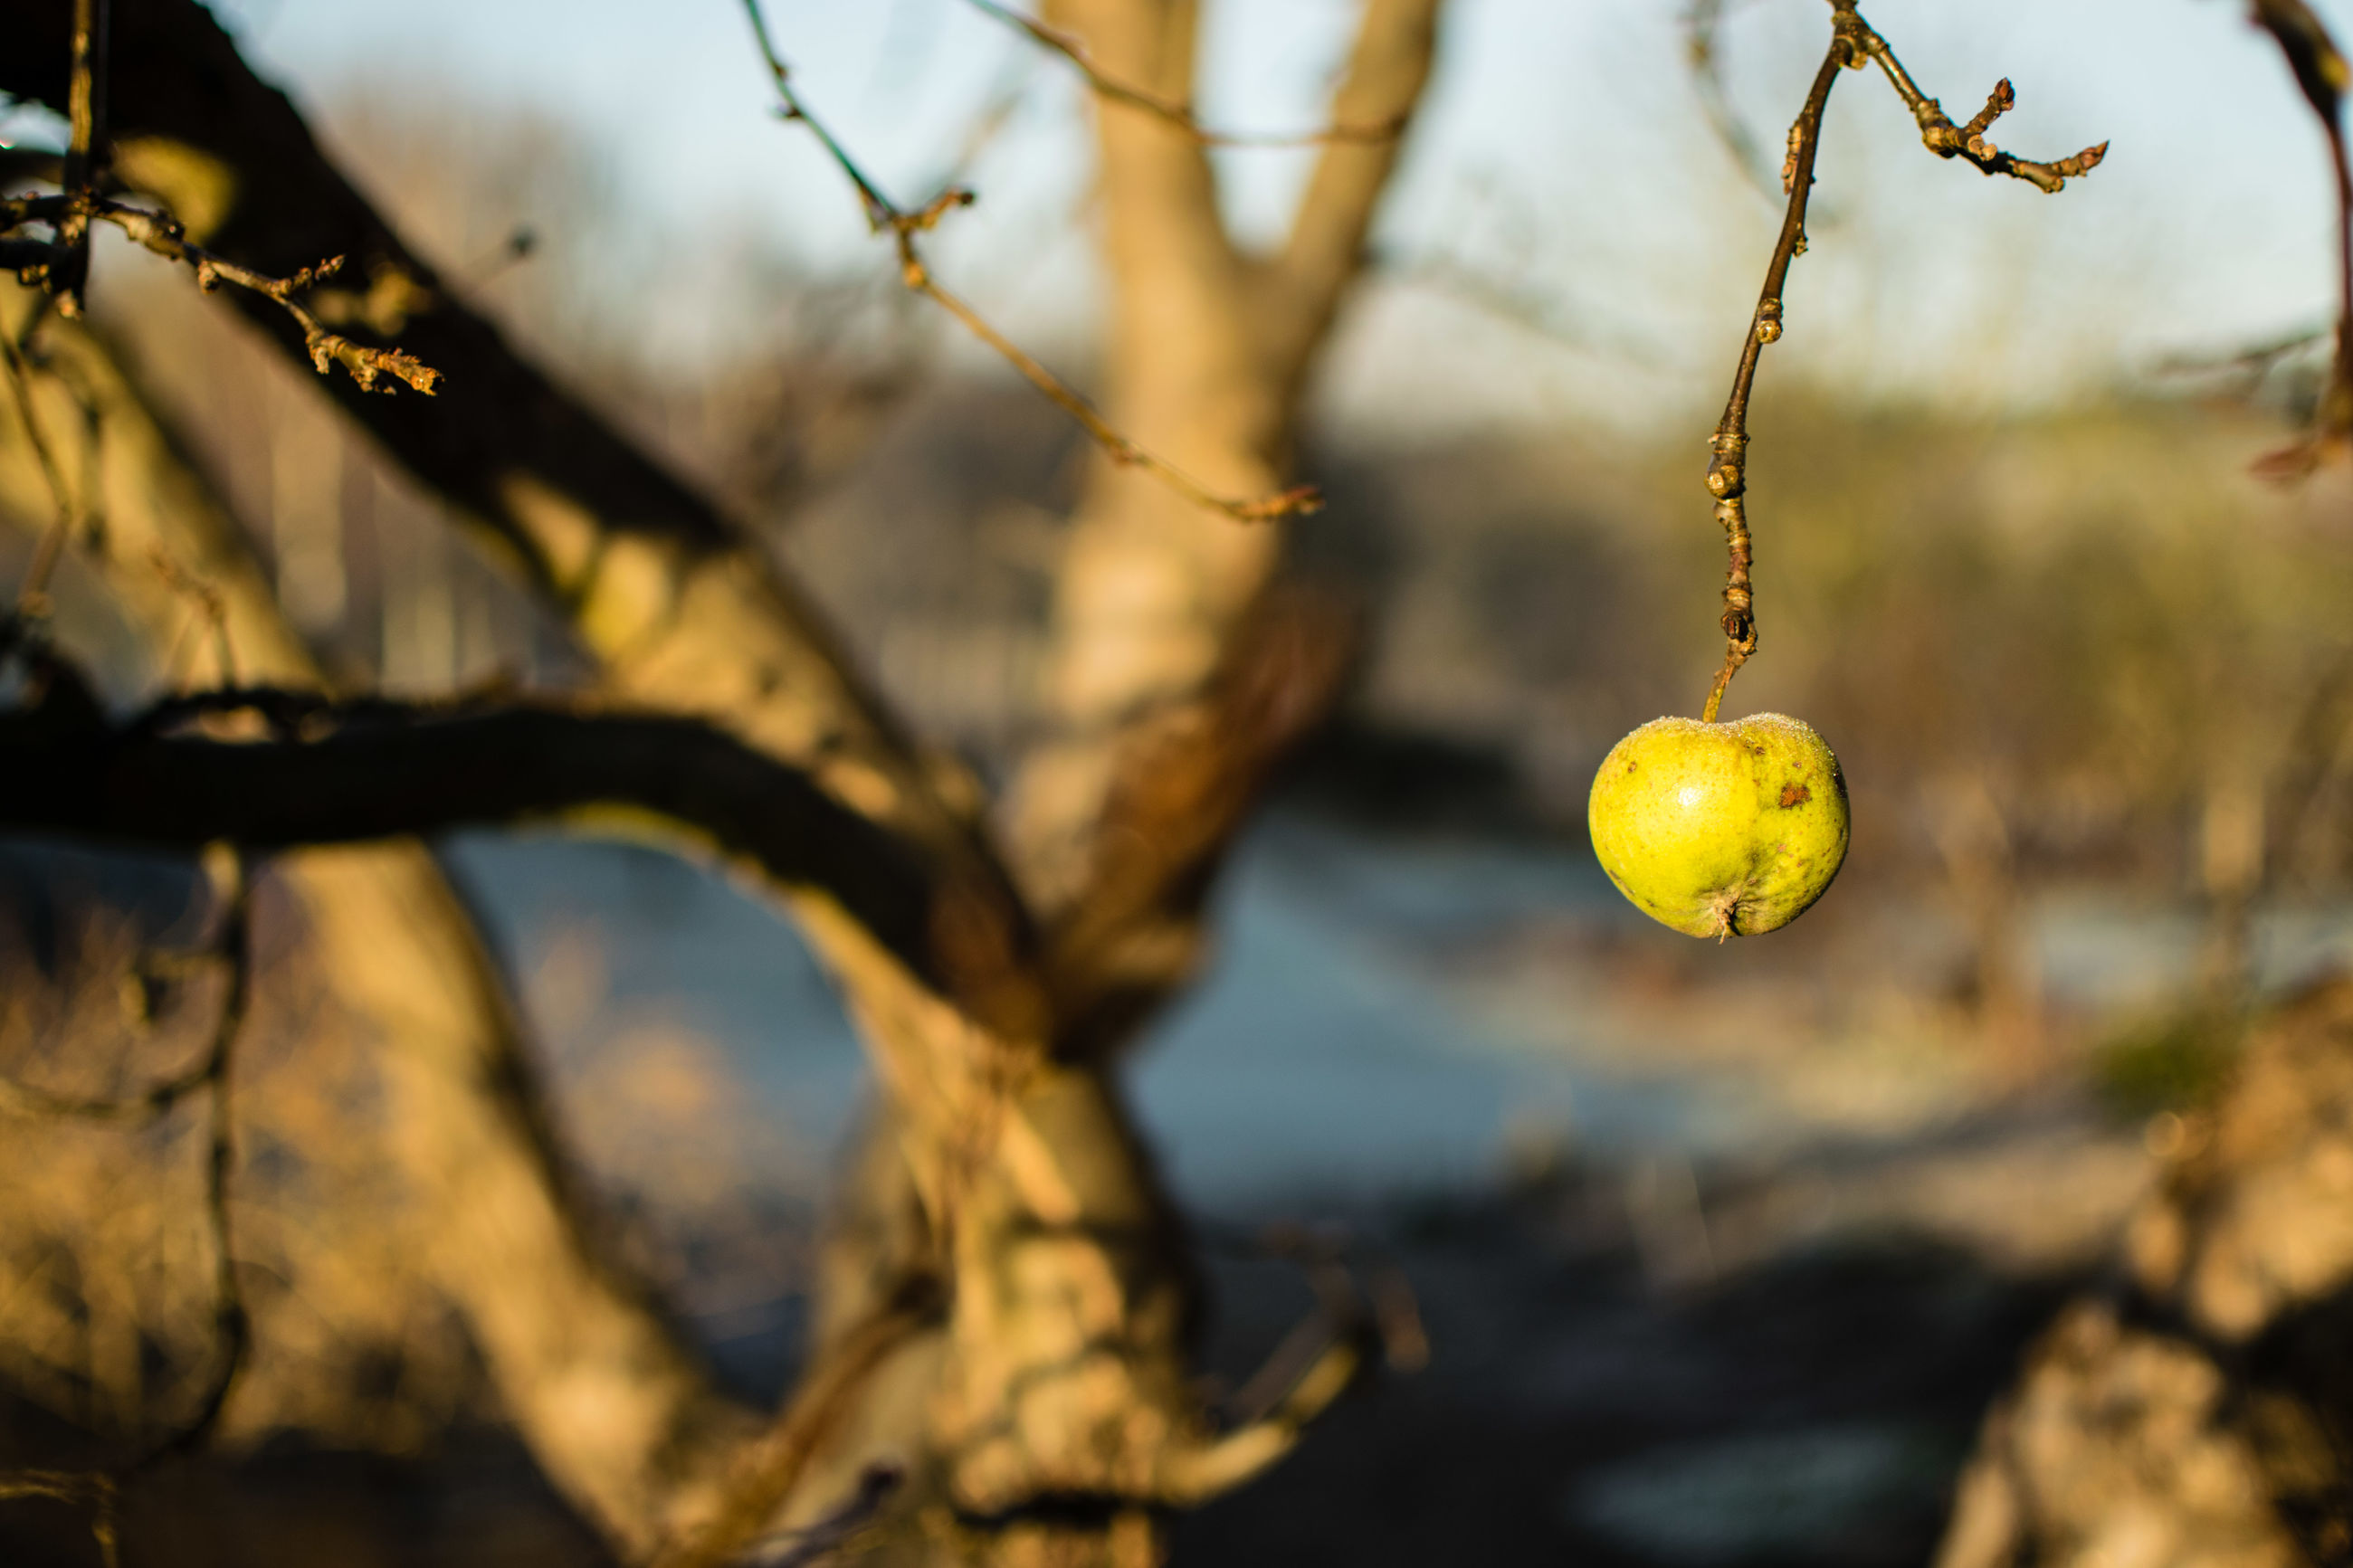 growth, branch, hanging, nature, fruit, tree, outdoors, no people, focus on foreground, close-up, day, beauty in nature, sky